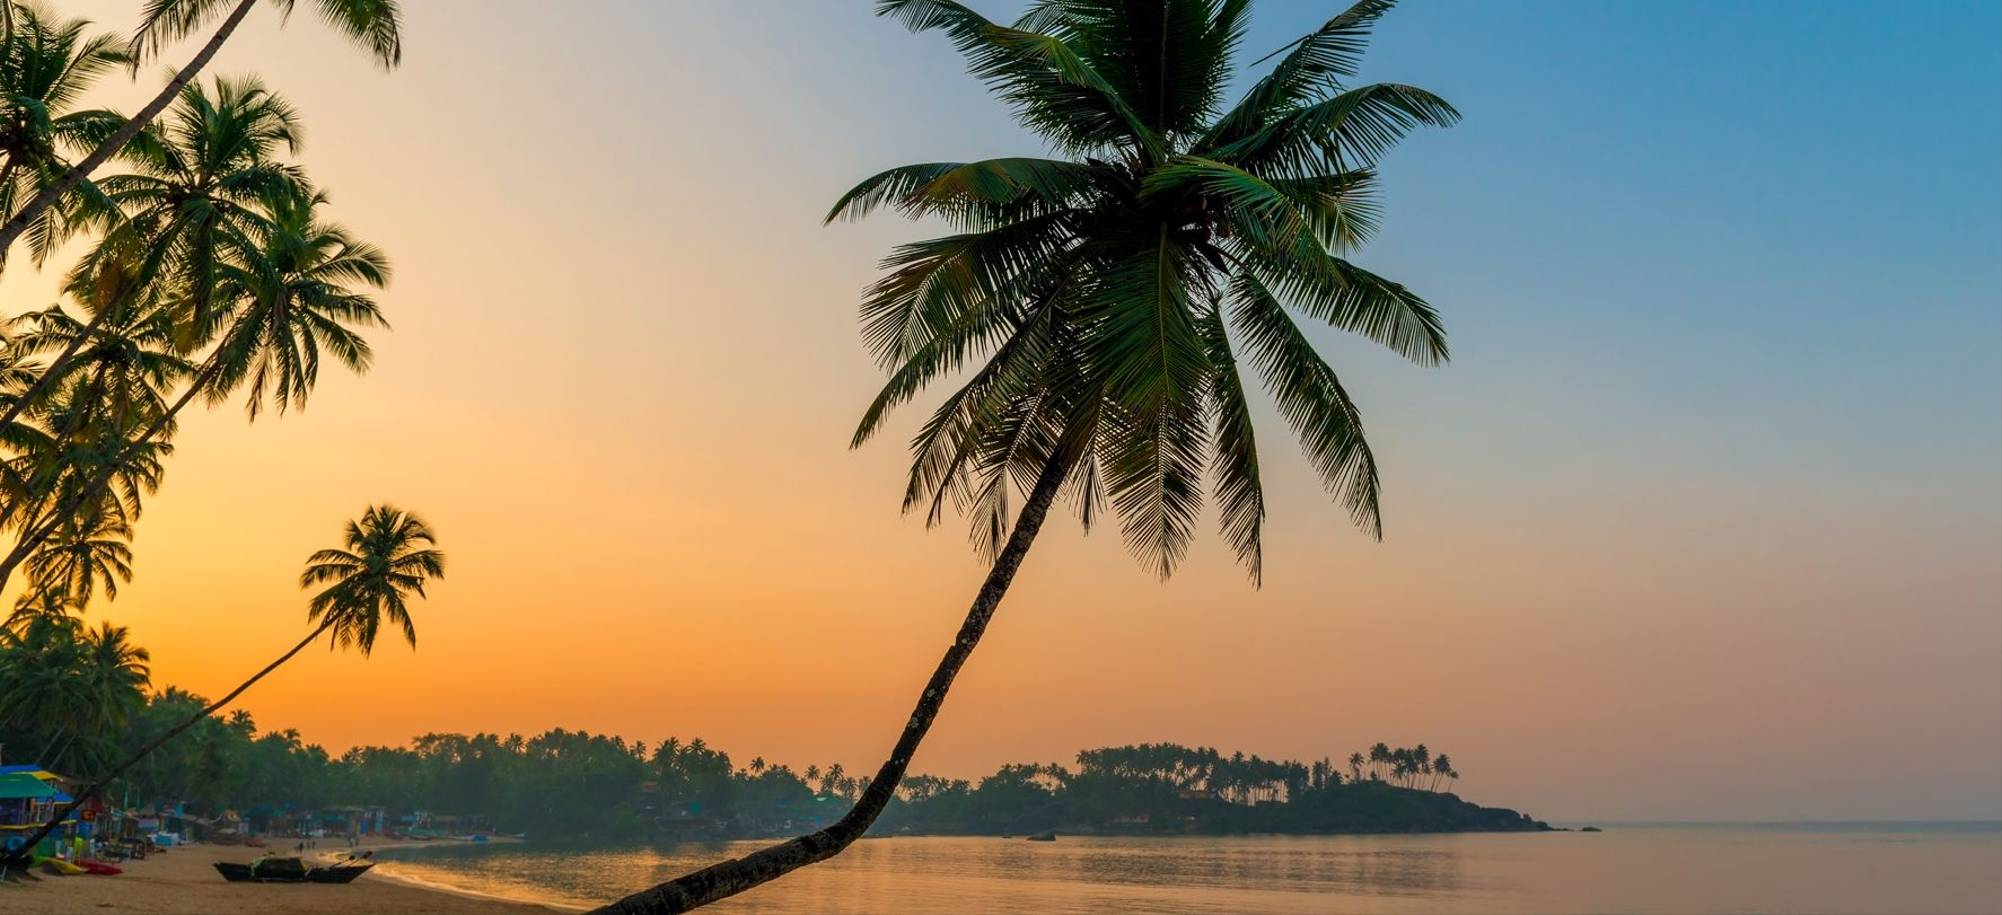 Goa at Sunset